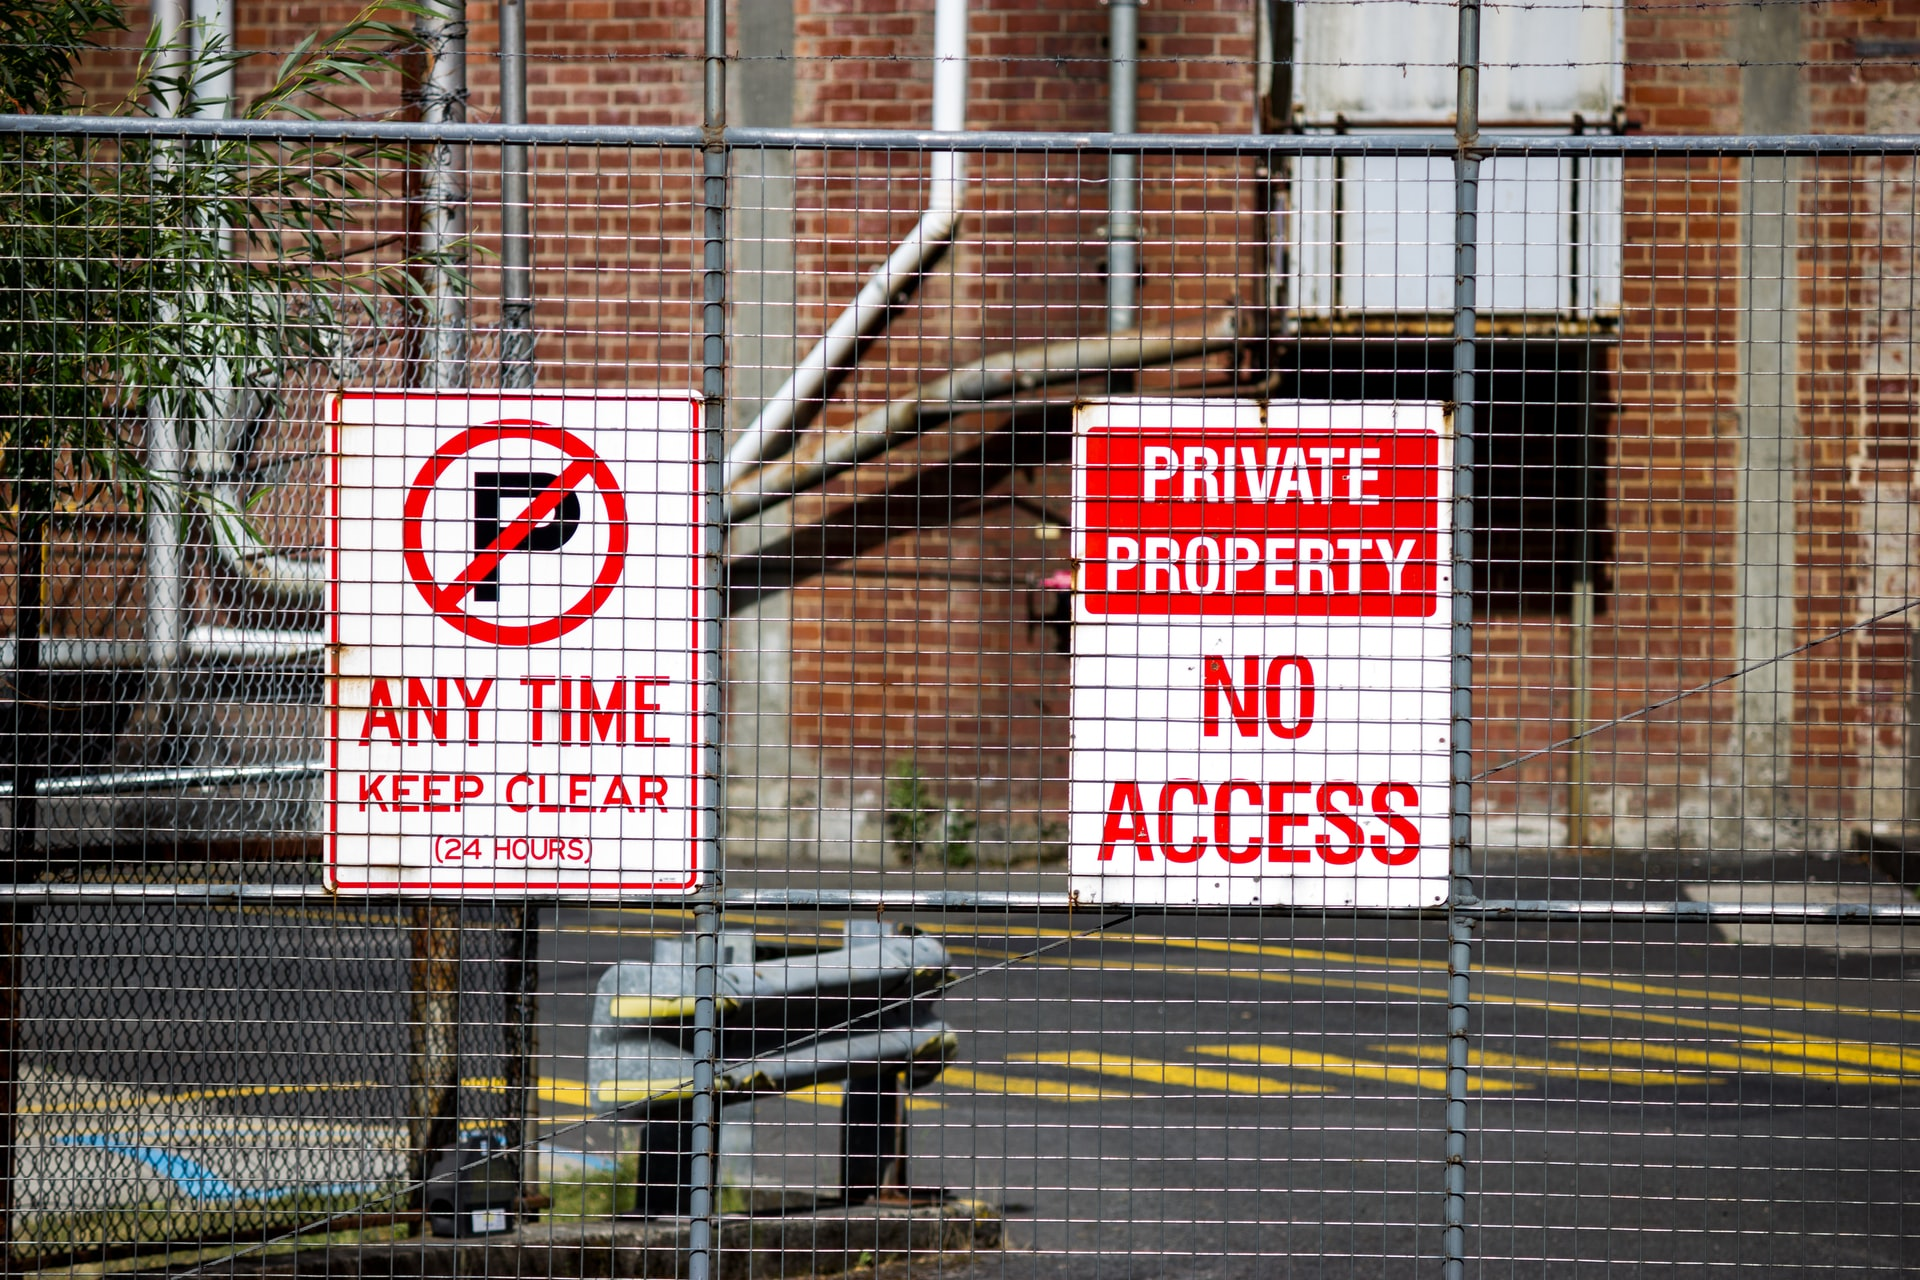 Photo of chain link fence with signs for private property and no parking attached